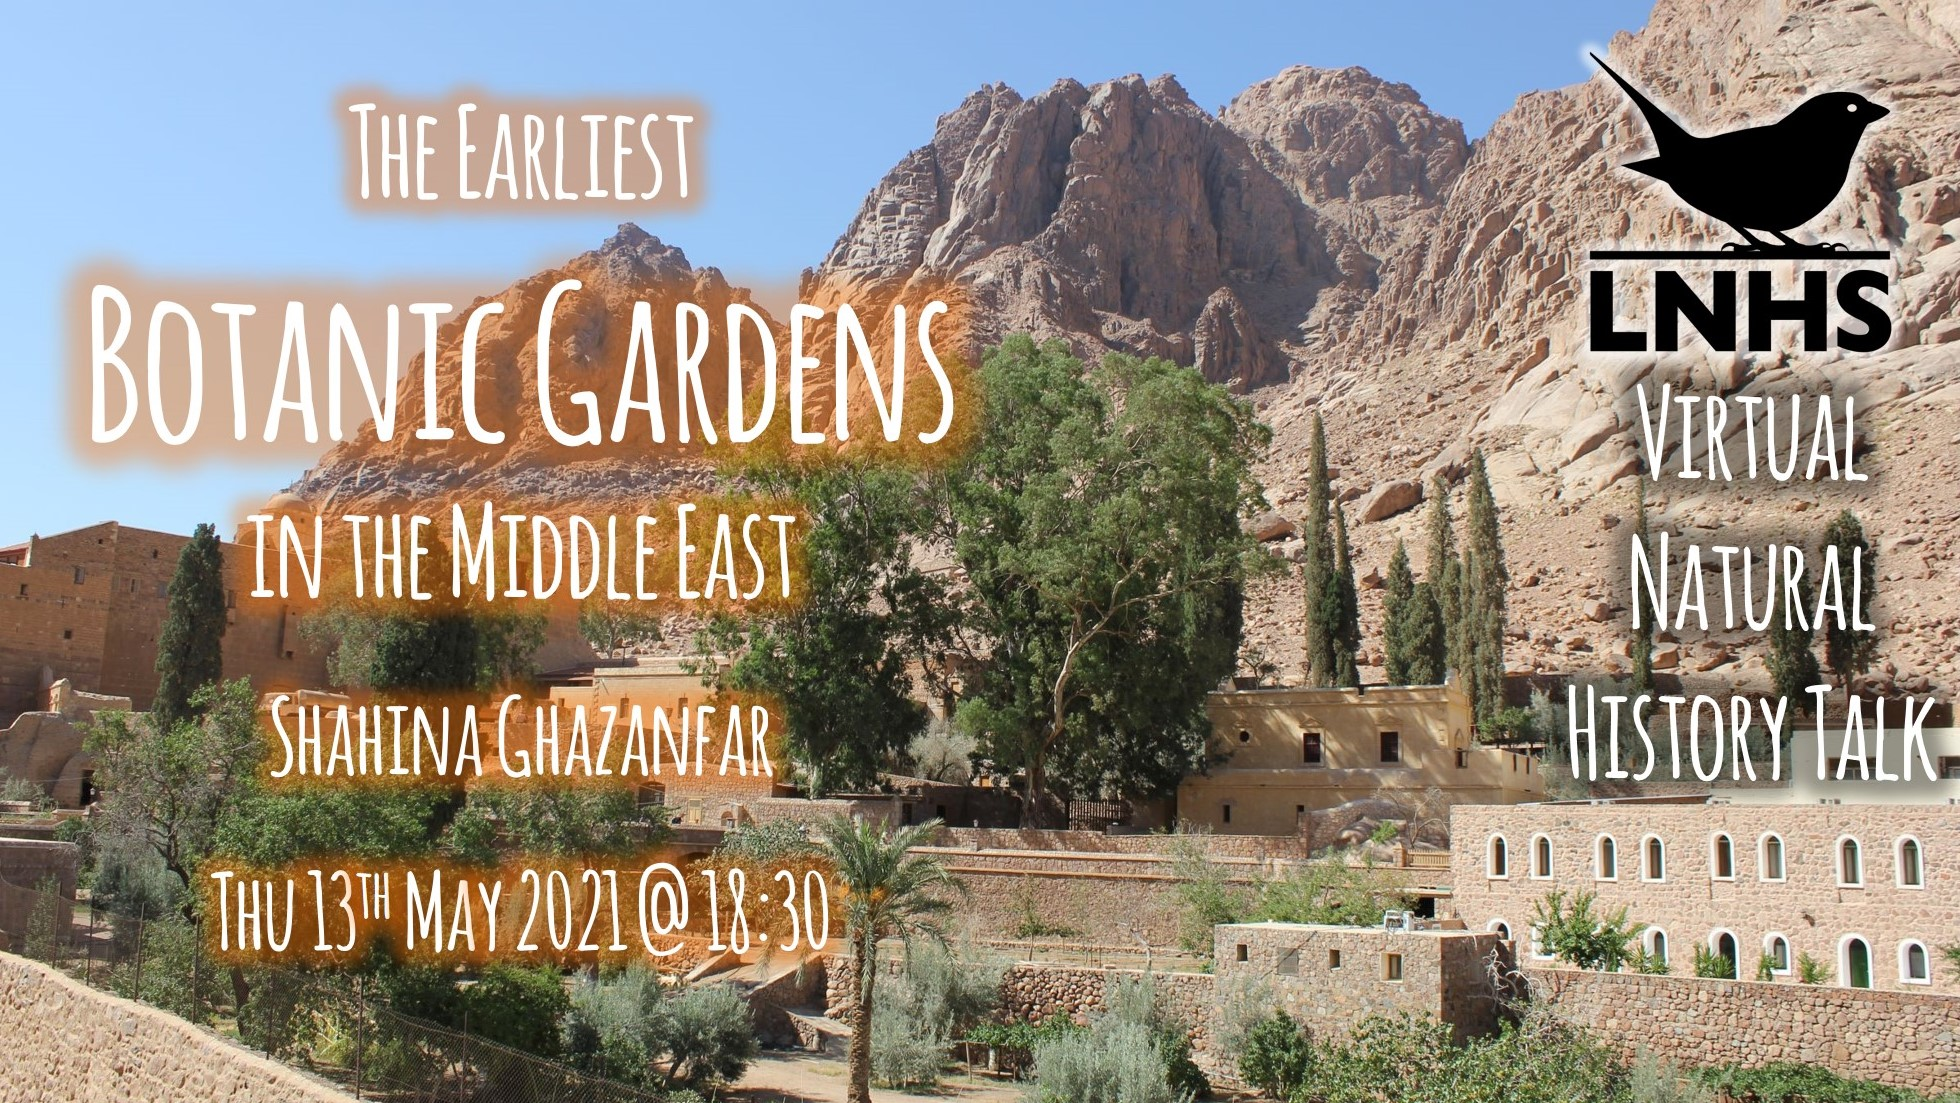 The Earliest Botanic Gardens of the Middle East AD